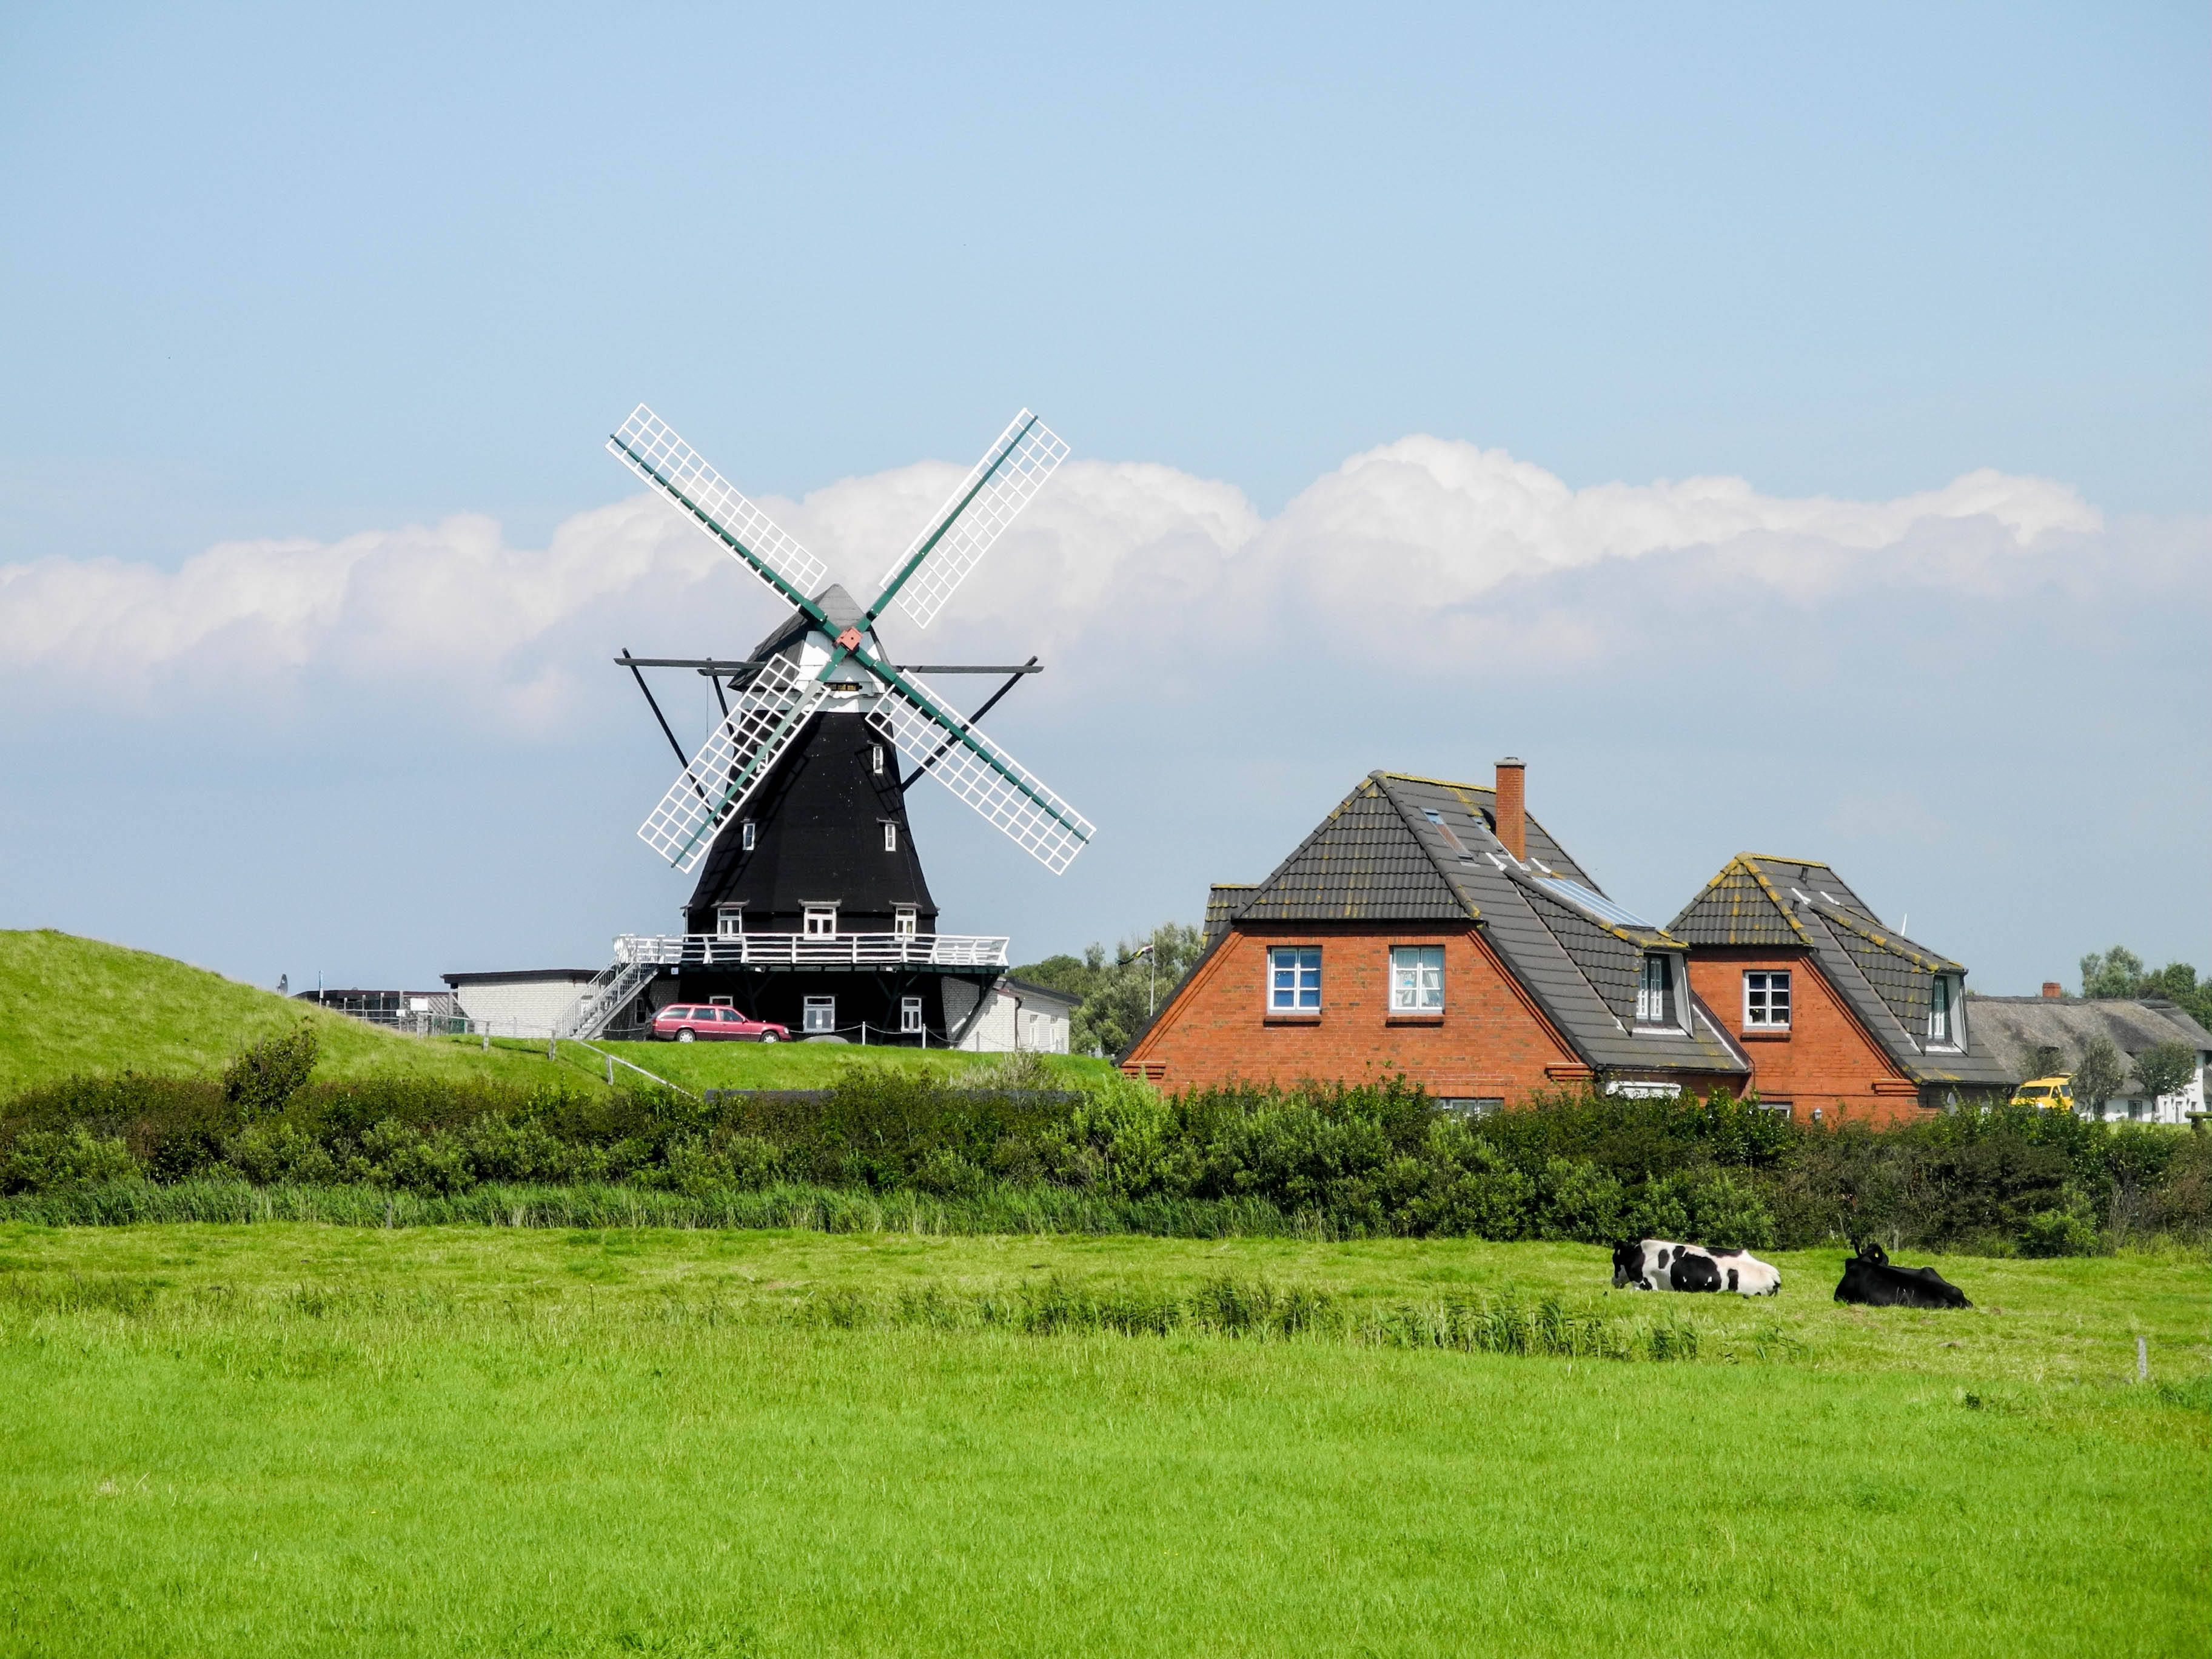 windmill-at-pellworm-germany-istock_24276092_large-2